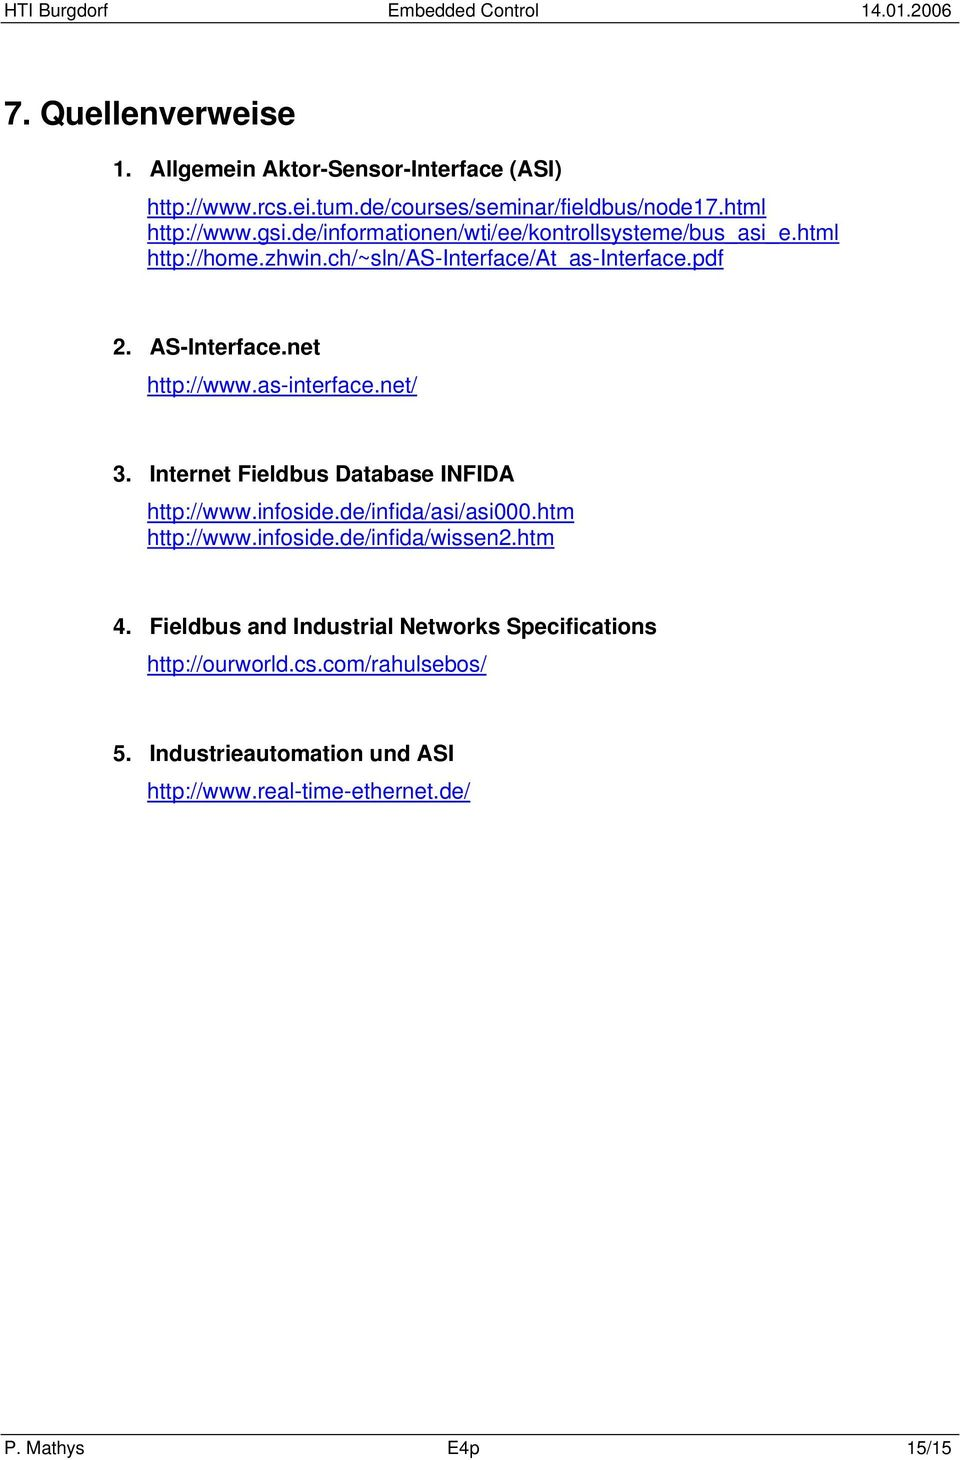 as-interface.net/ 3. Internet Fieldbus Database INFIDA http://www.infoside.de/infida/asi/asi000.htm http://www.infoside.de/infida/wissen2.htm 4.